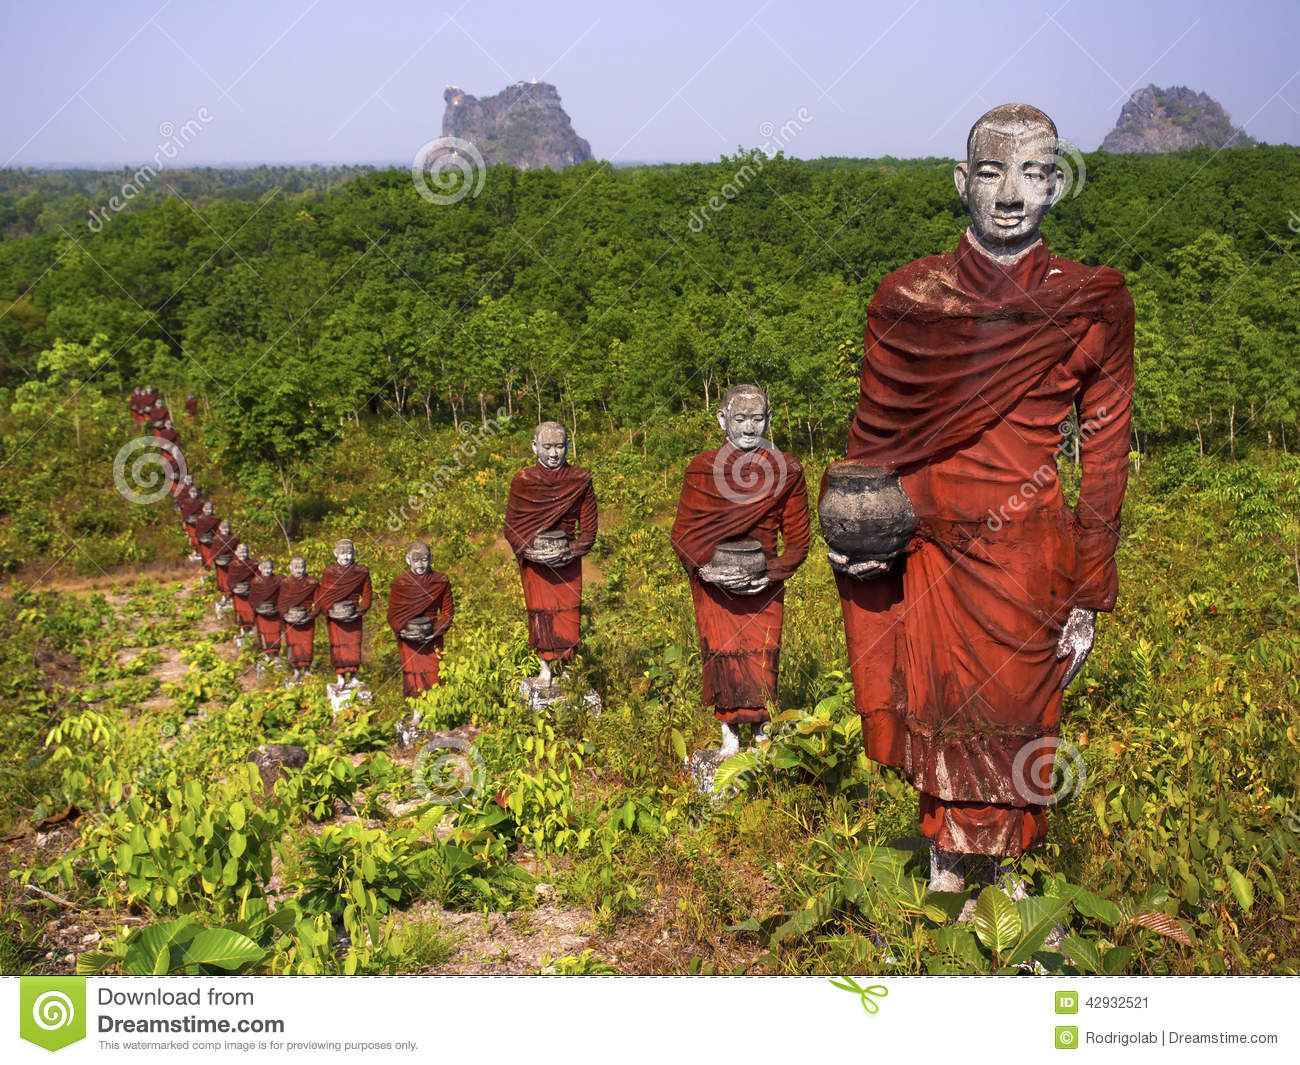 forest buddhist single men Dating rules according to buddha history deems buddha as one of the wisest men in history from mindfulness to peace and tranquility many people seek out the advice of the man who seems to.